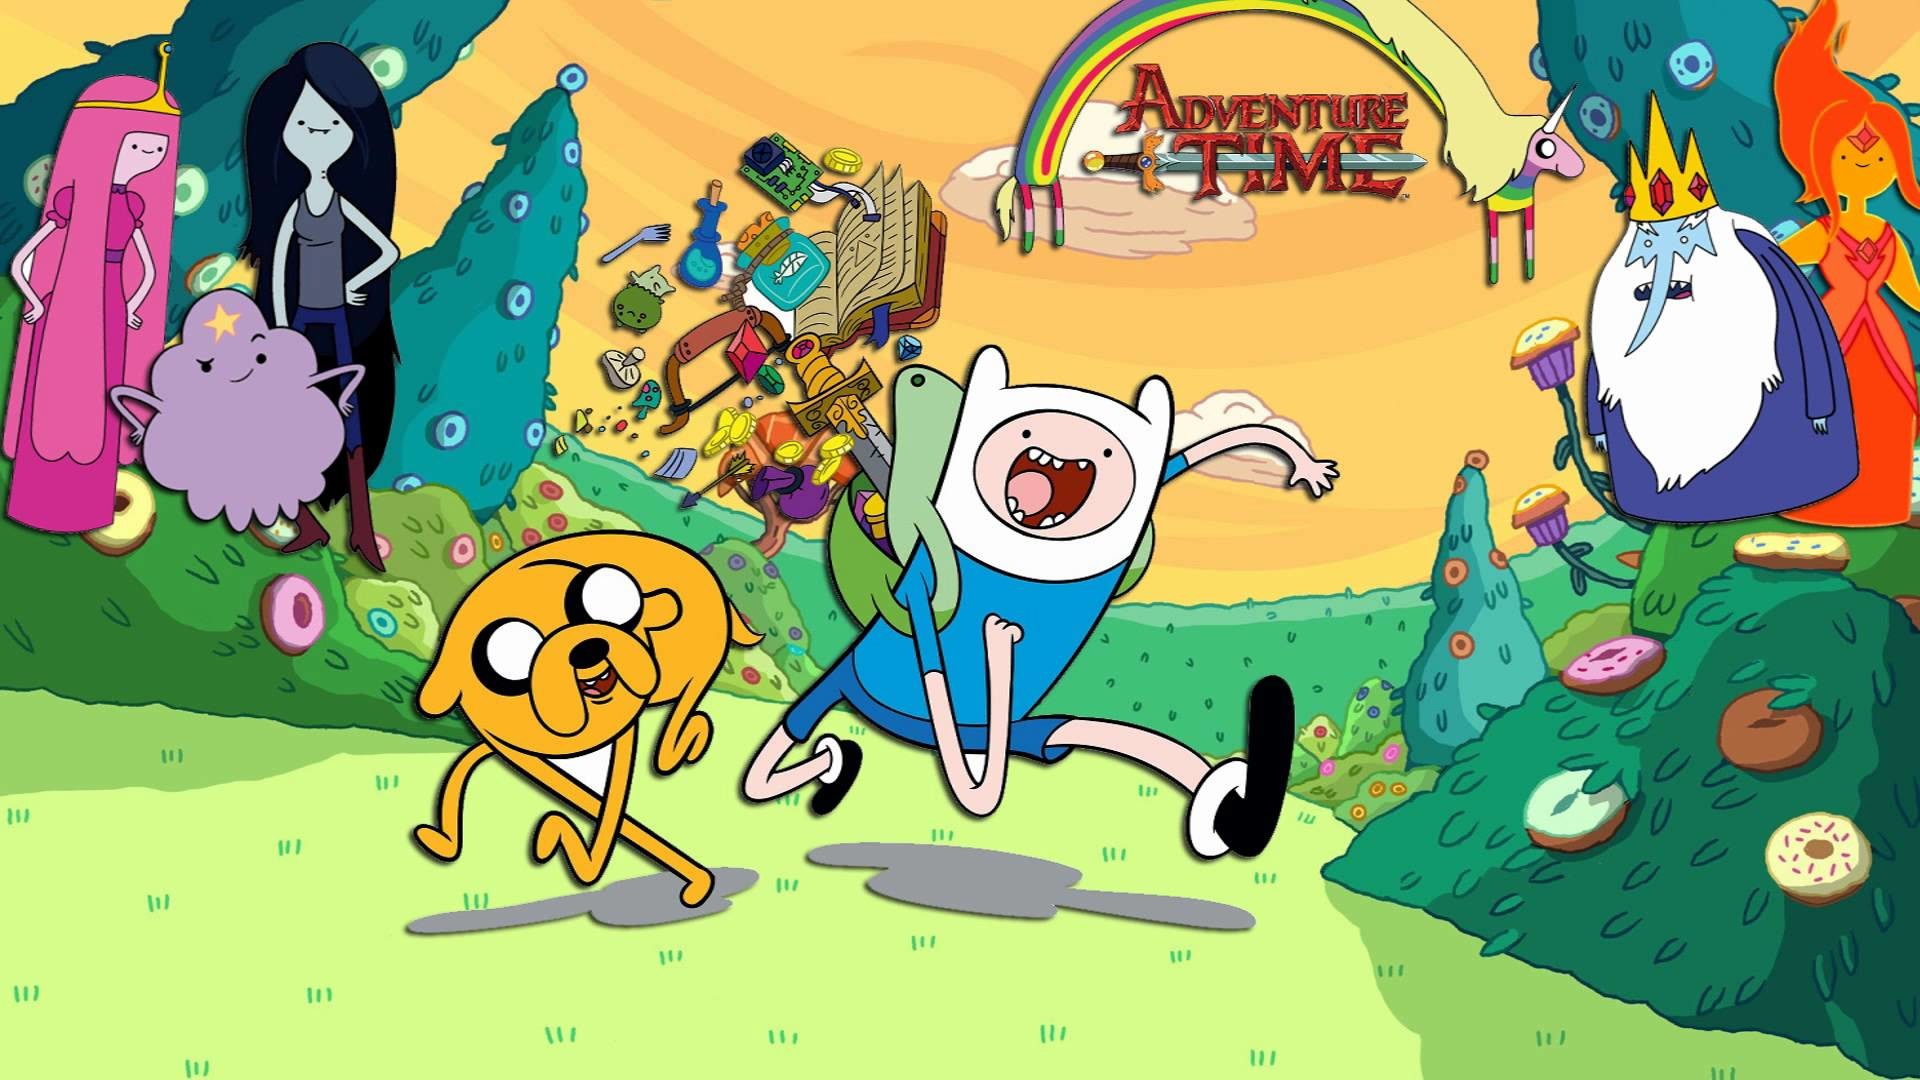 1920x1080 Adventure Time Wallpaper | Download Wallpapers